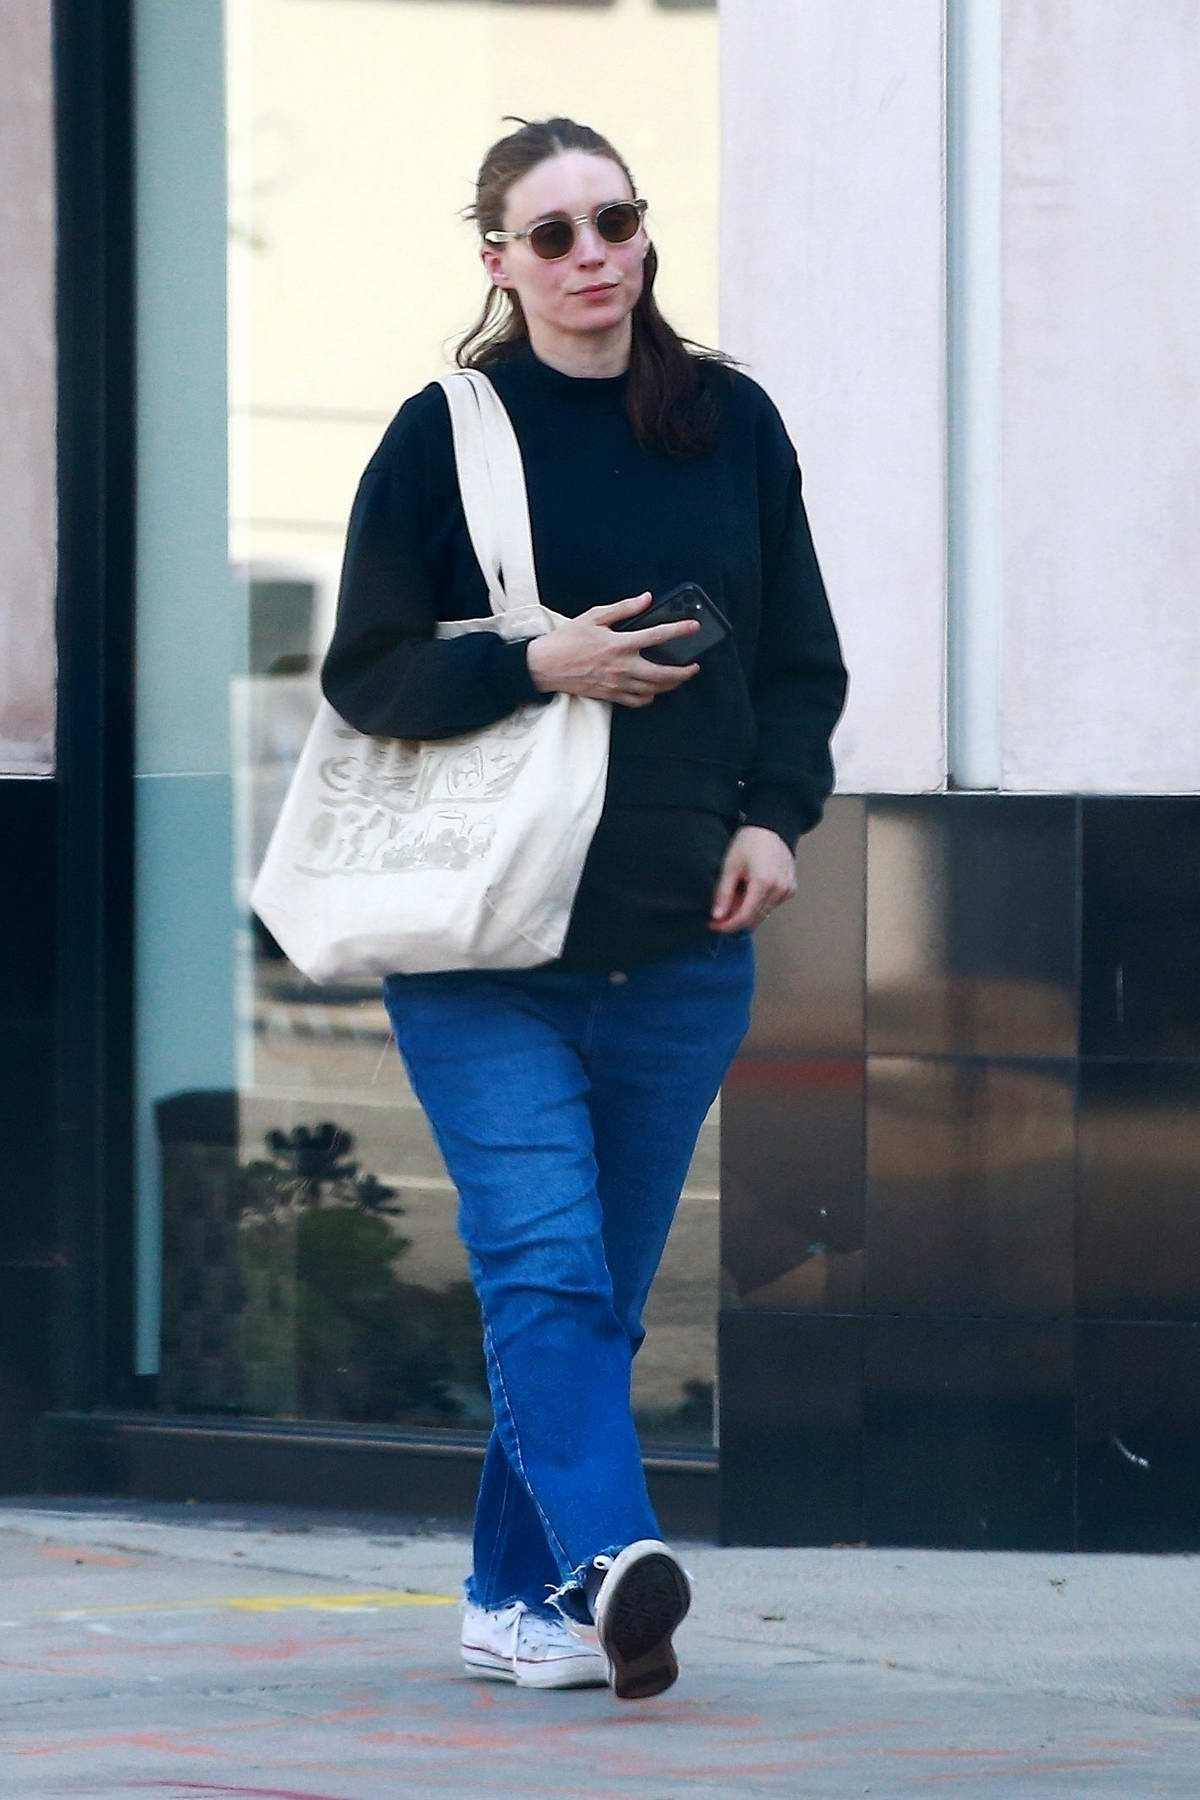 Rooney Mara covers up her baby bump in an oversized sweatshirt as she enjoys a spa day in Los Angeles